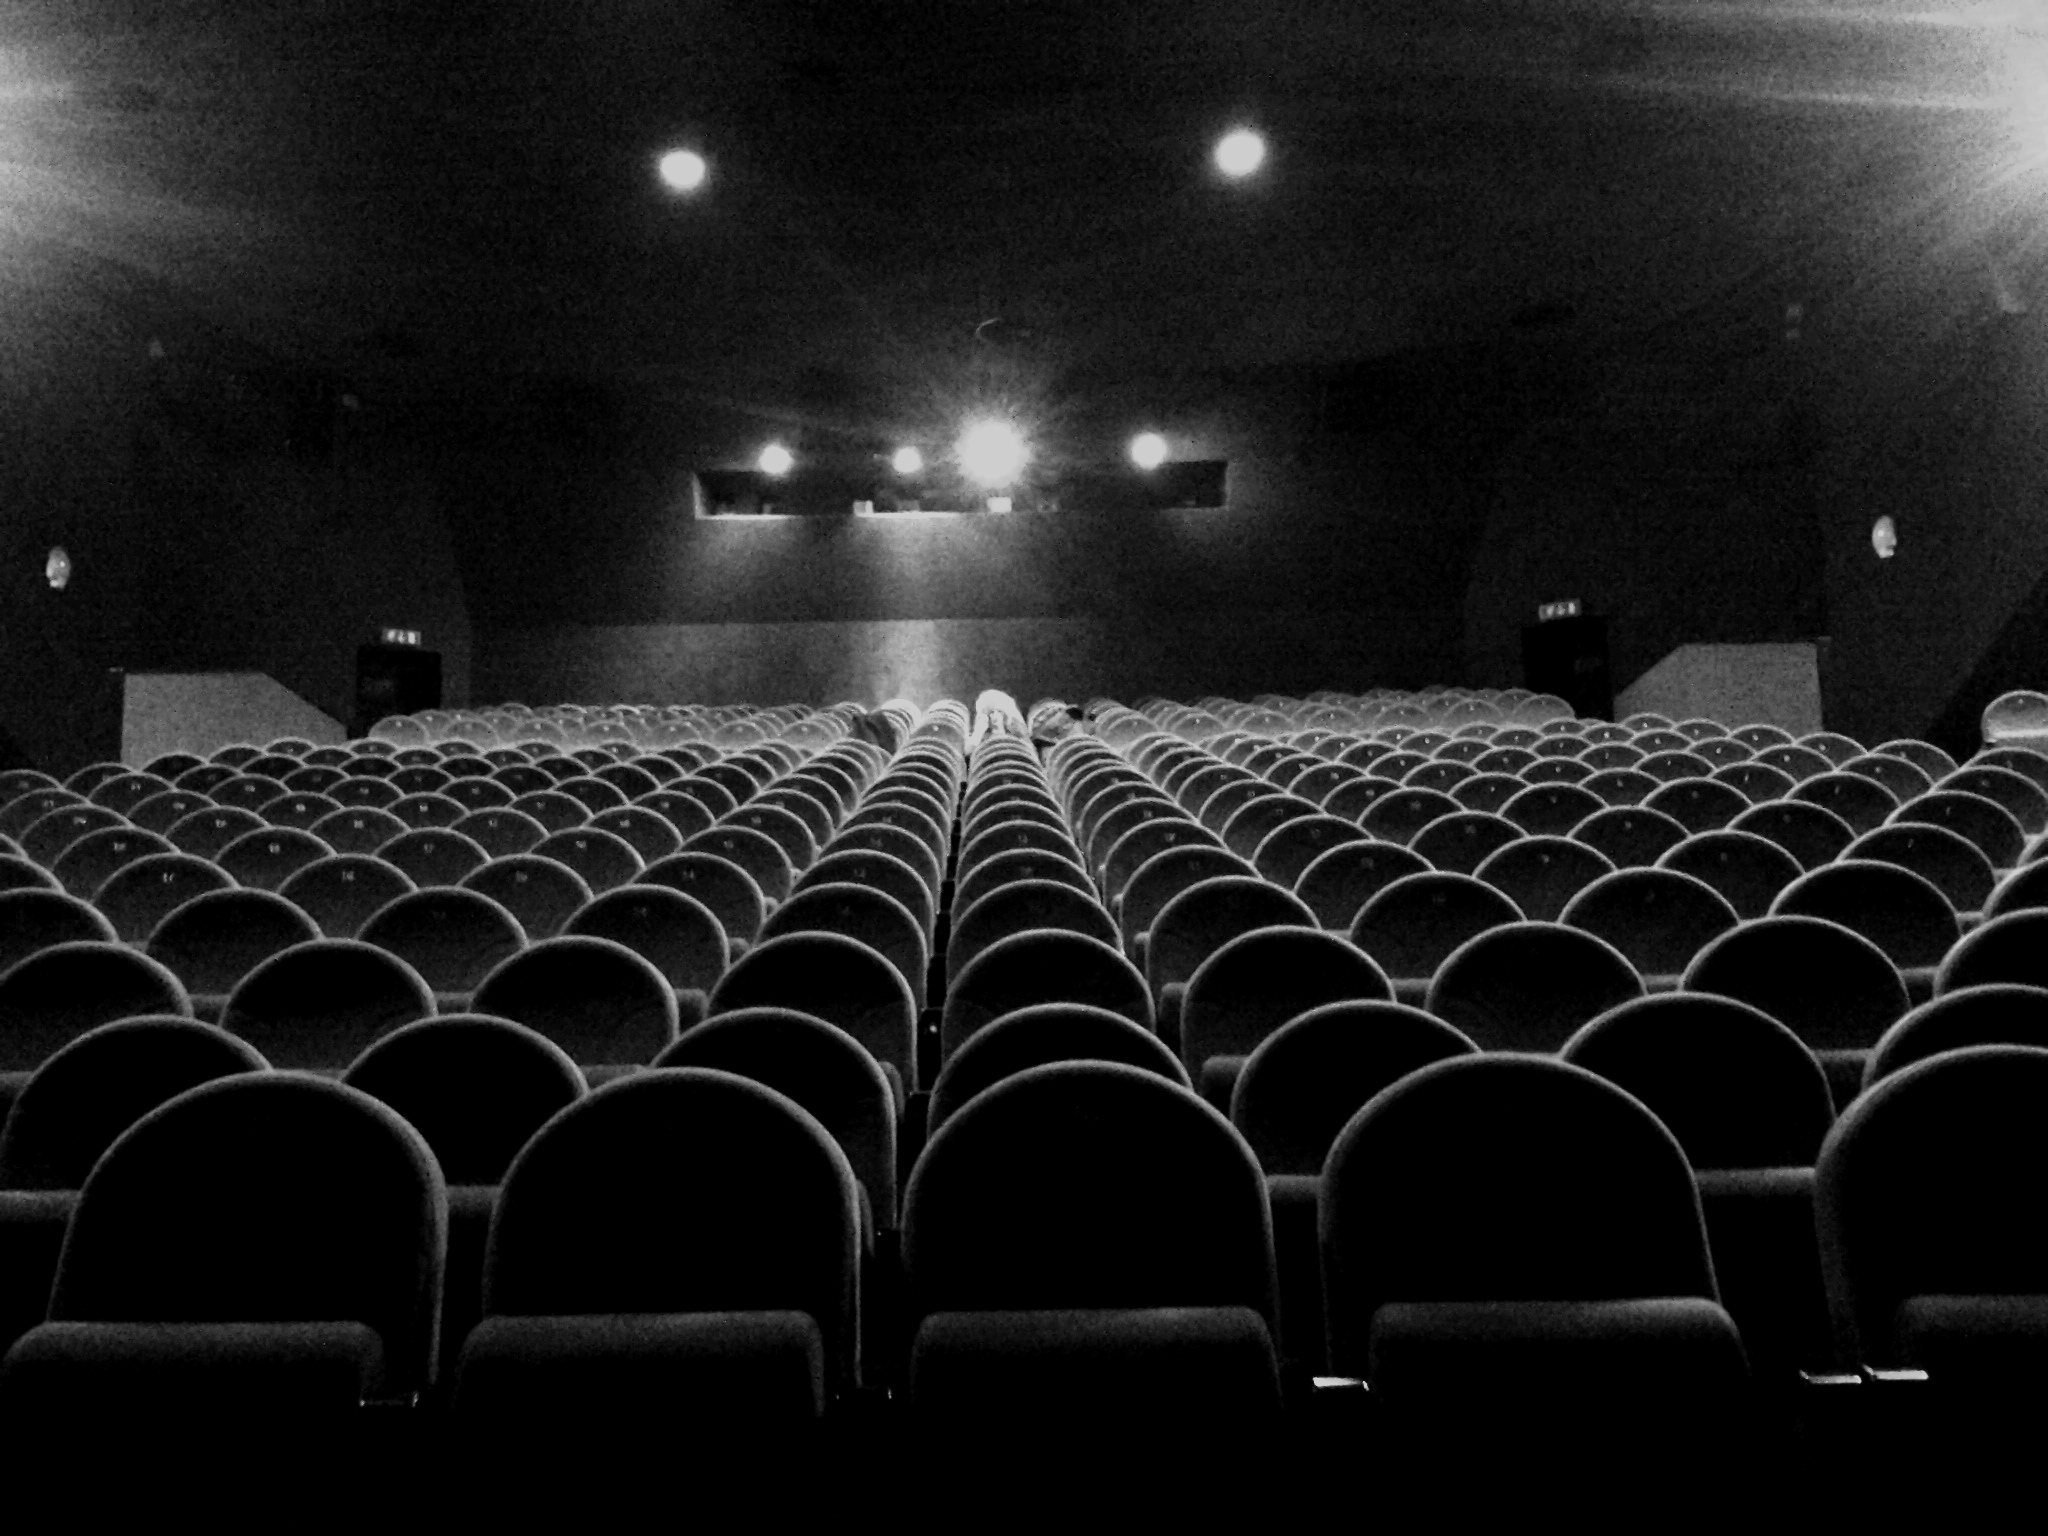 empty_cinema_room_by_malypluskwiak-d38x4pp